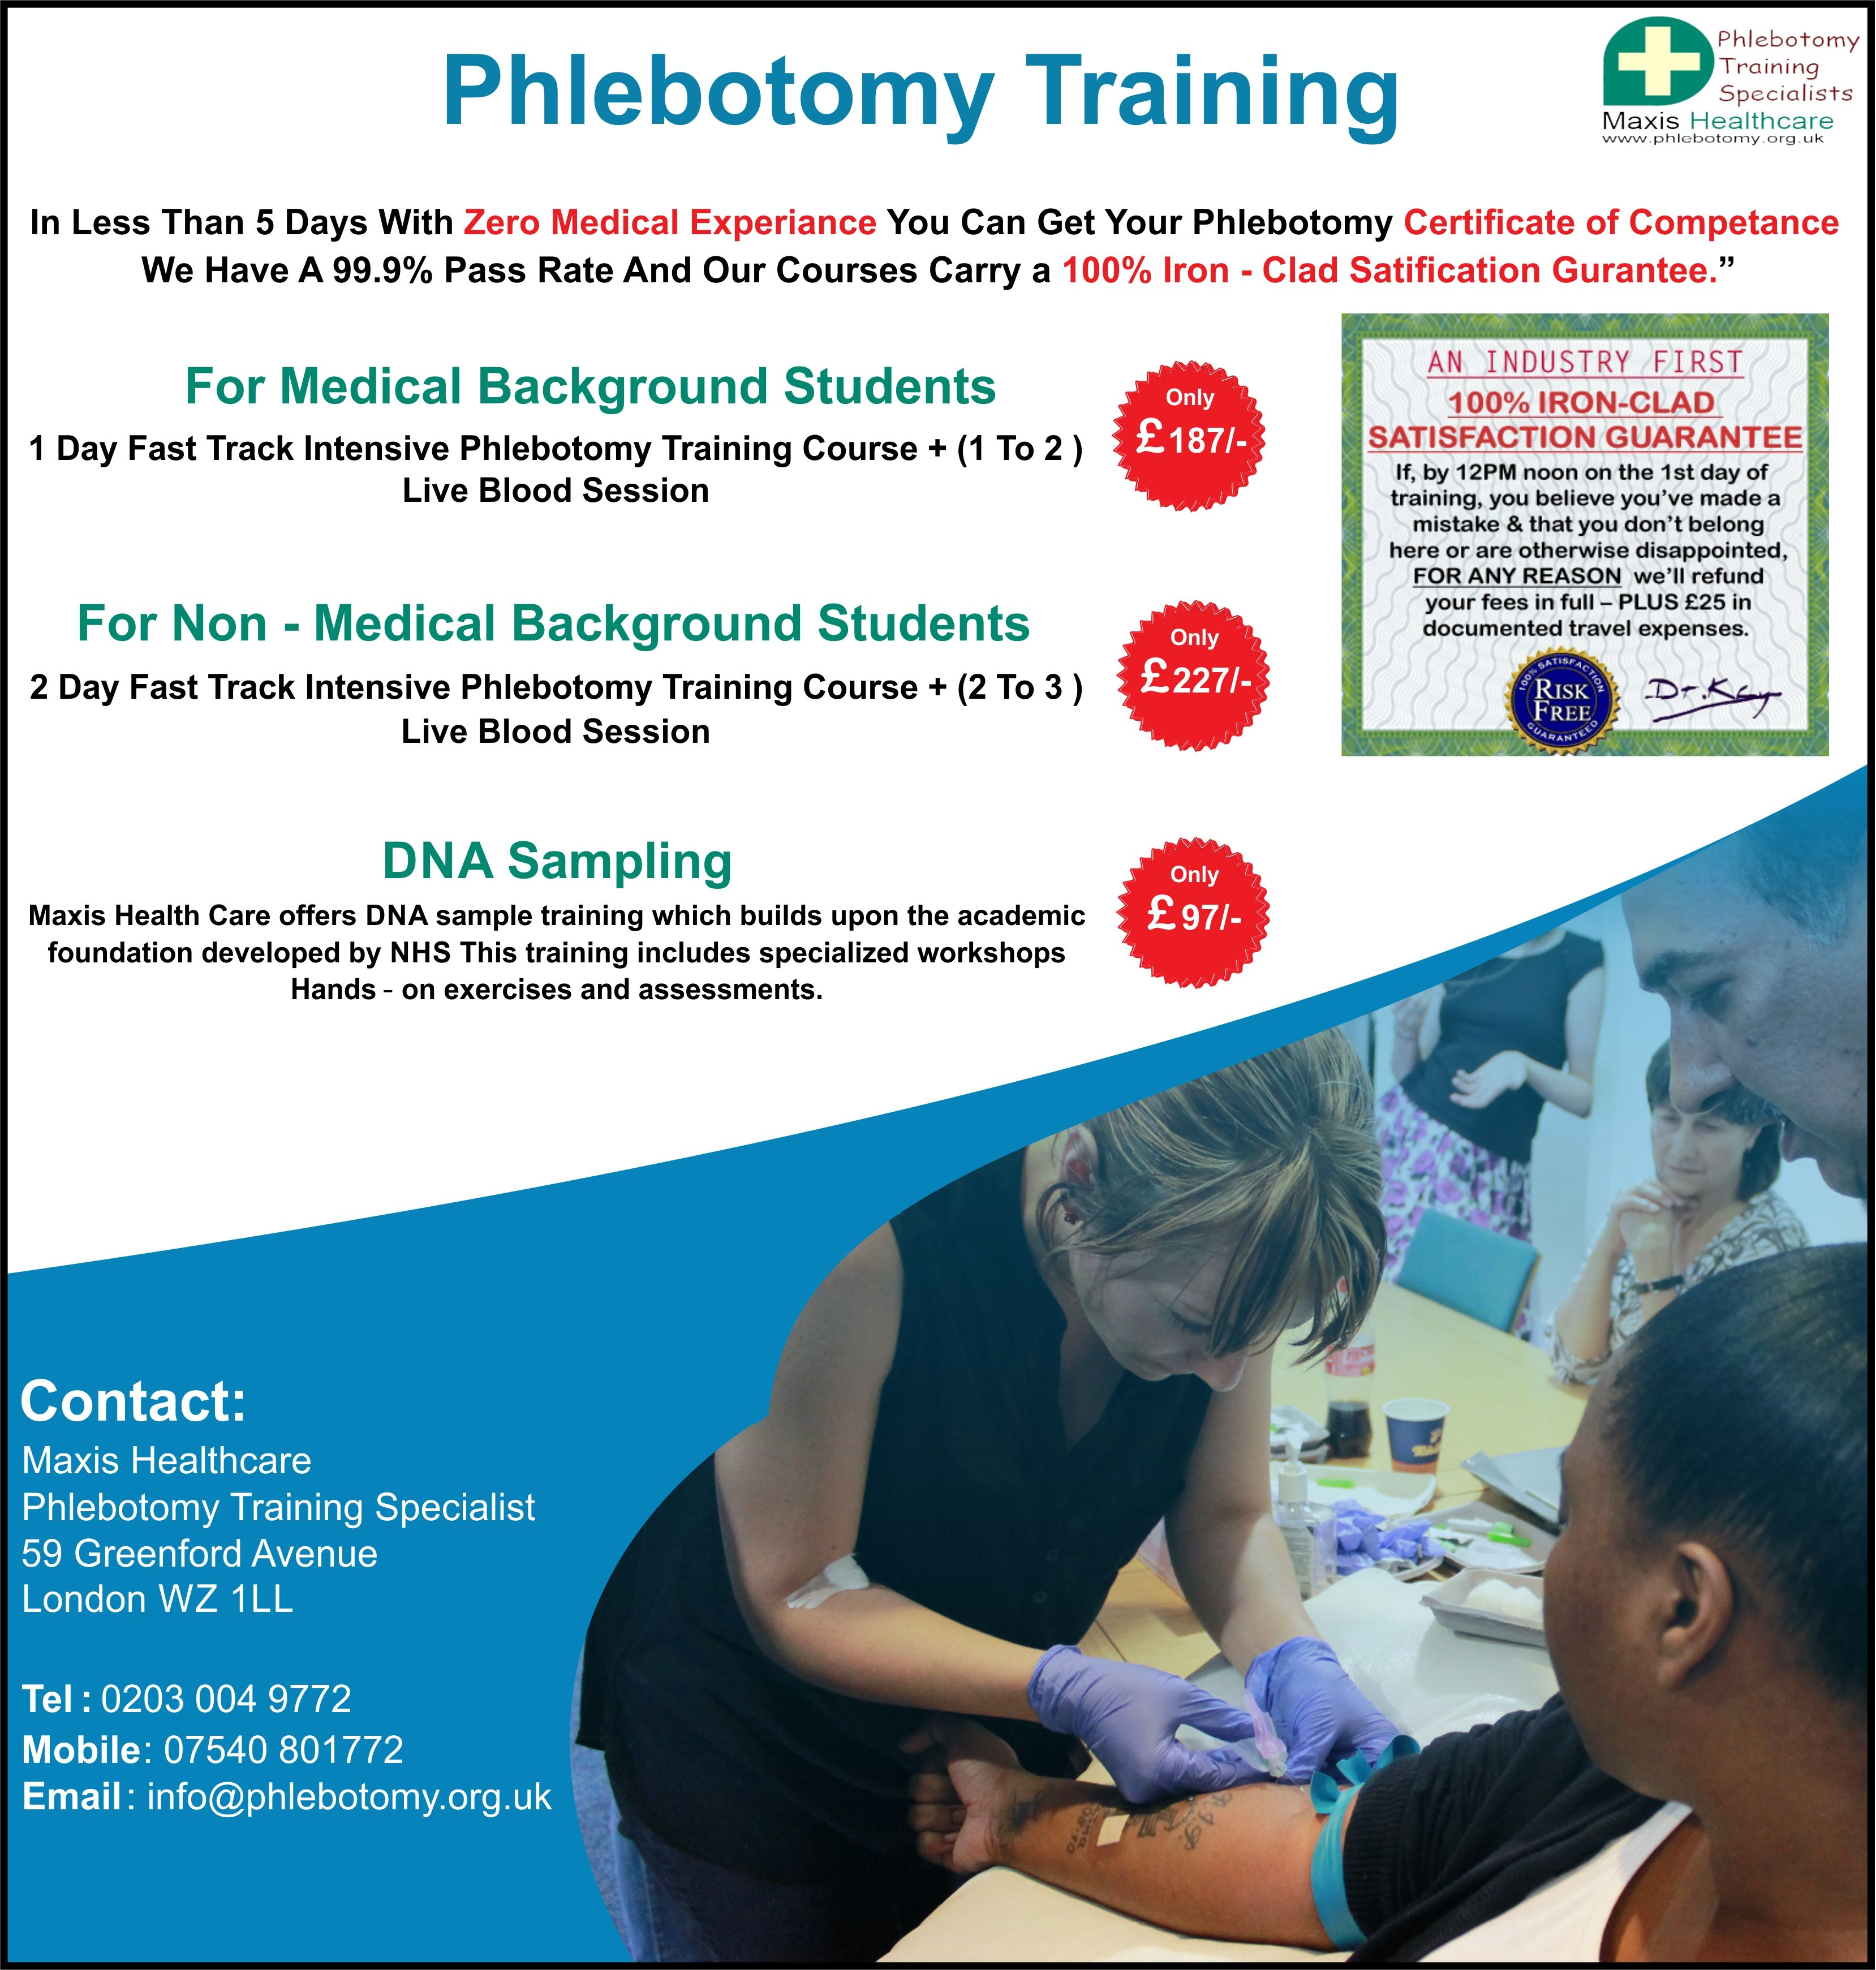 Pin By Maxis Healthcare On Phlebotomy Training Pinterest Phlebotomy